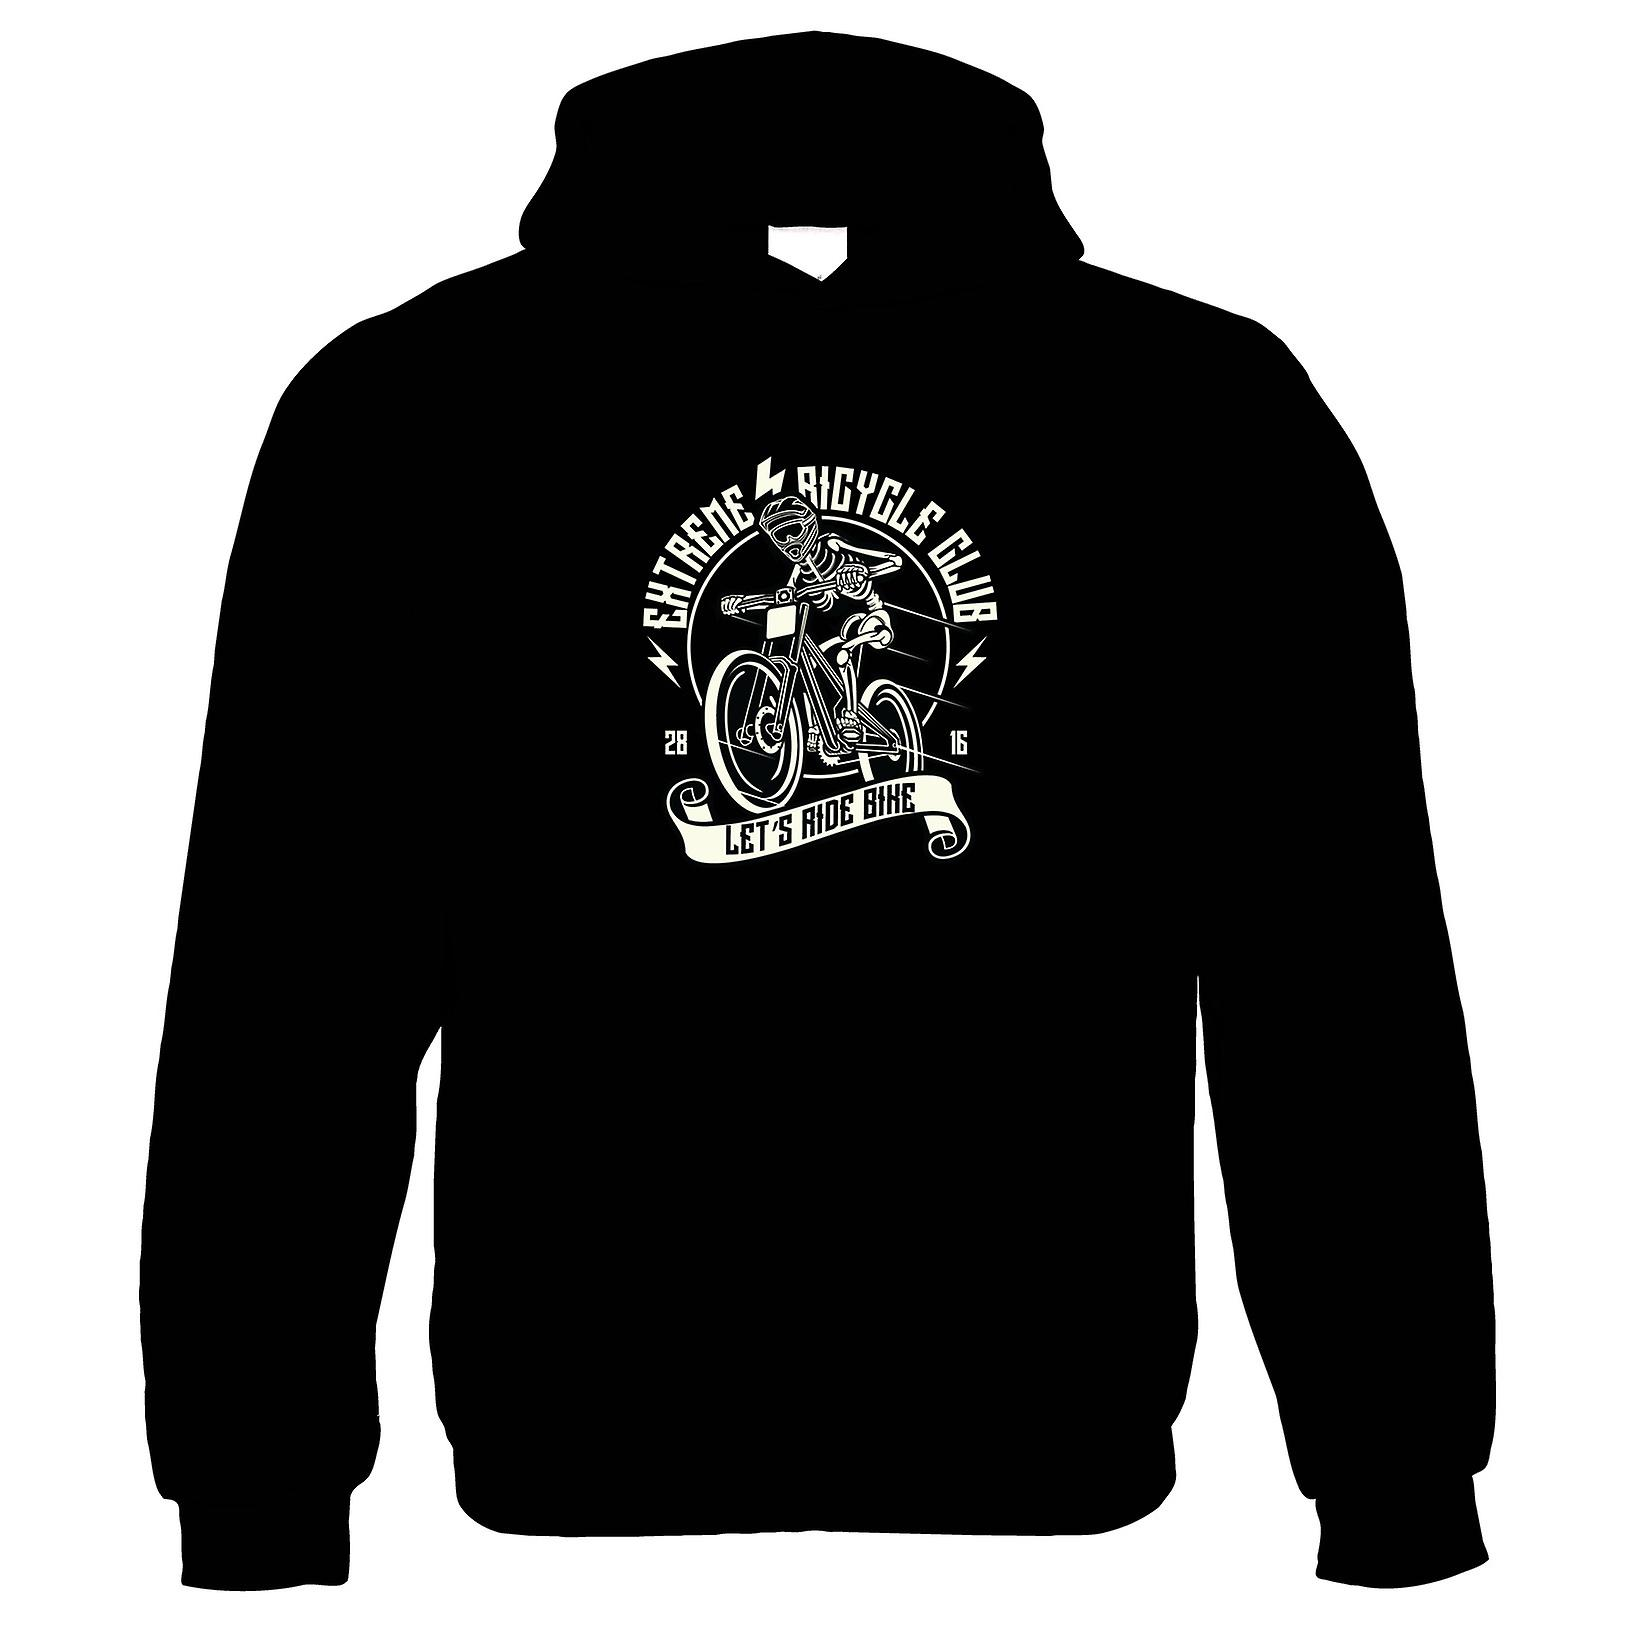 Lets Ride Bike Hoodie   Bicycle Bike Pedal Faster Gear Chain Cyclist Rider    Cycling Gift Him Her